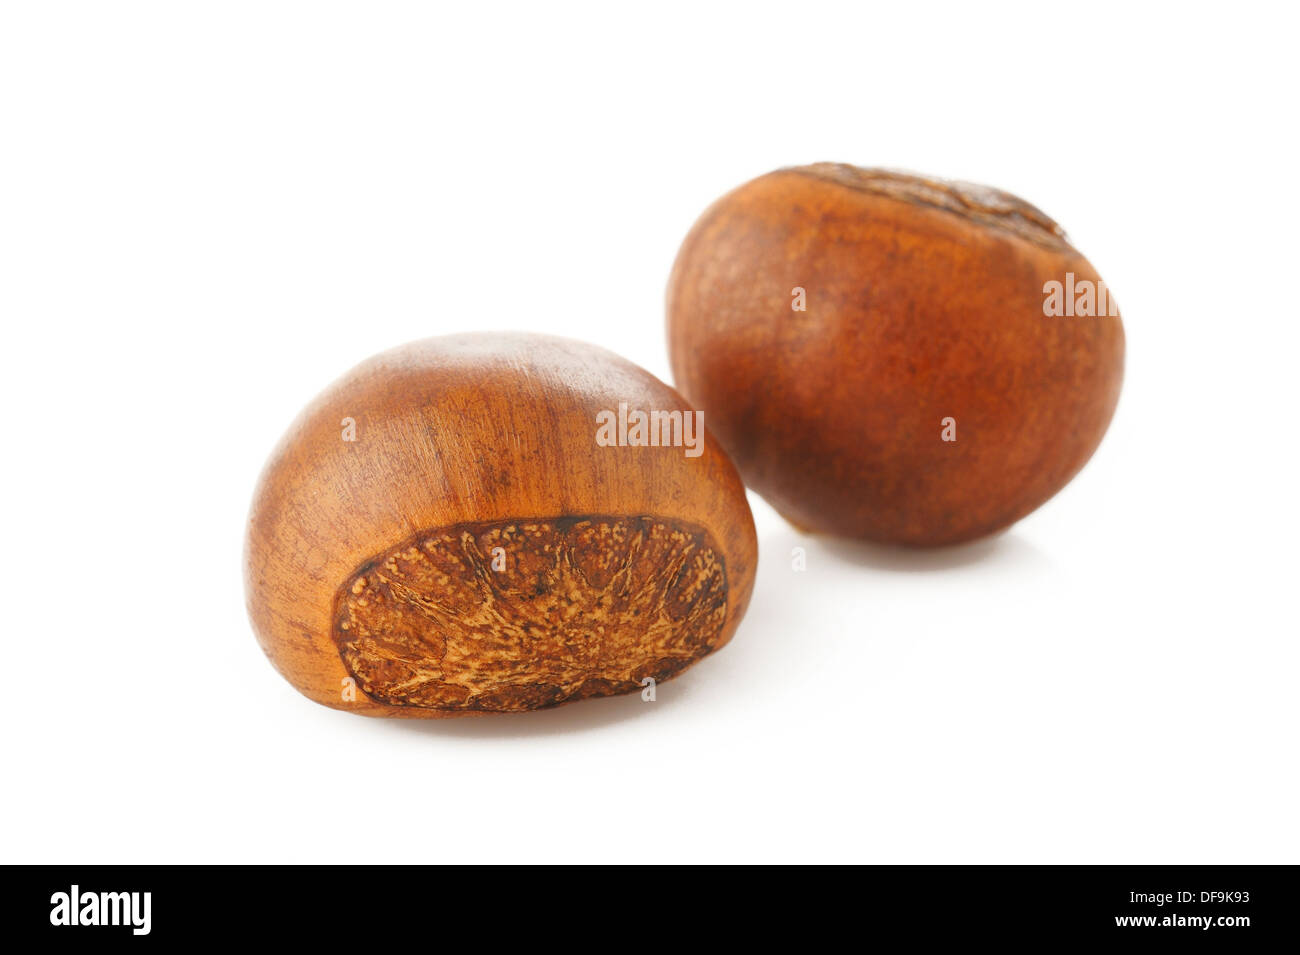 roasted chestnut on white background - Stock Image